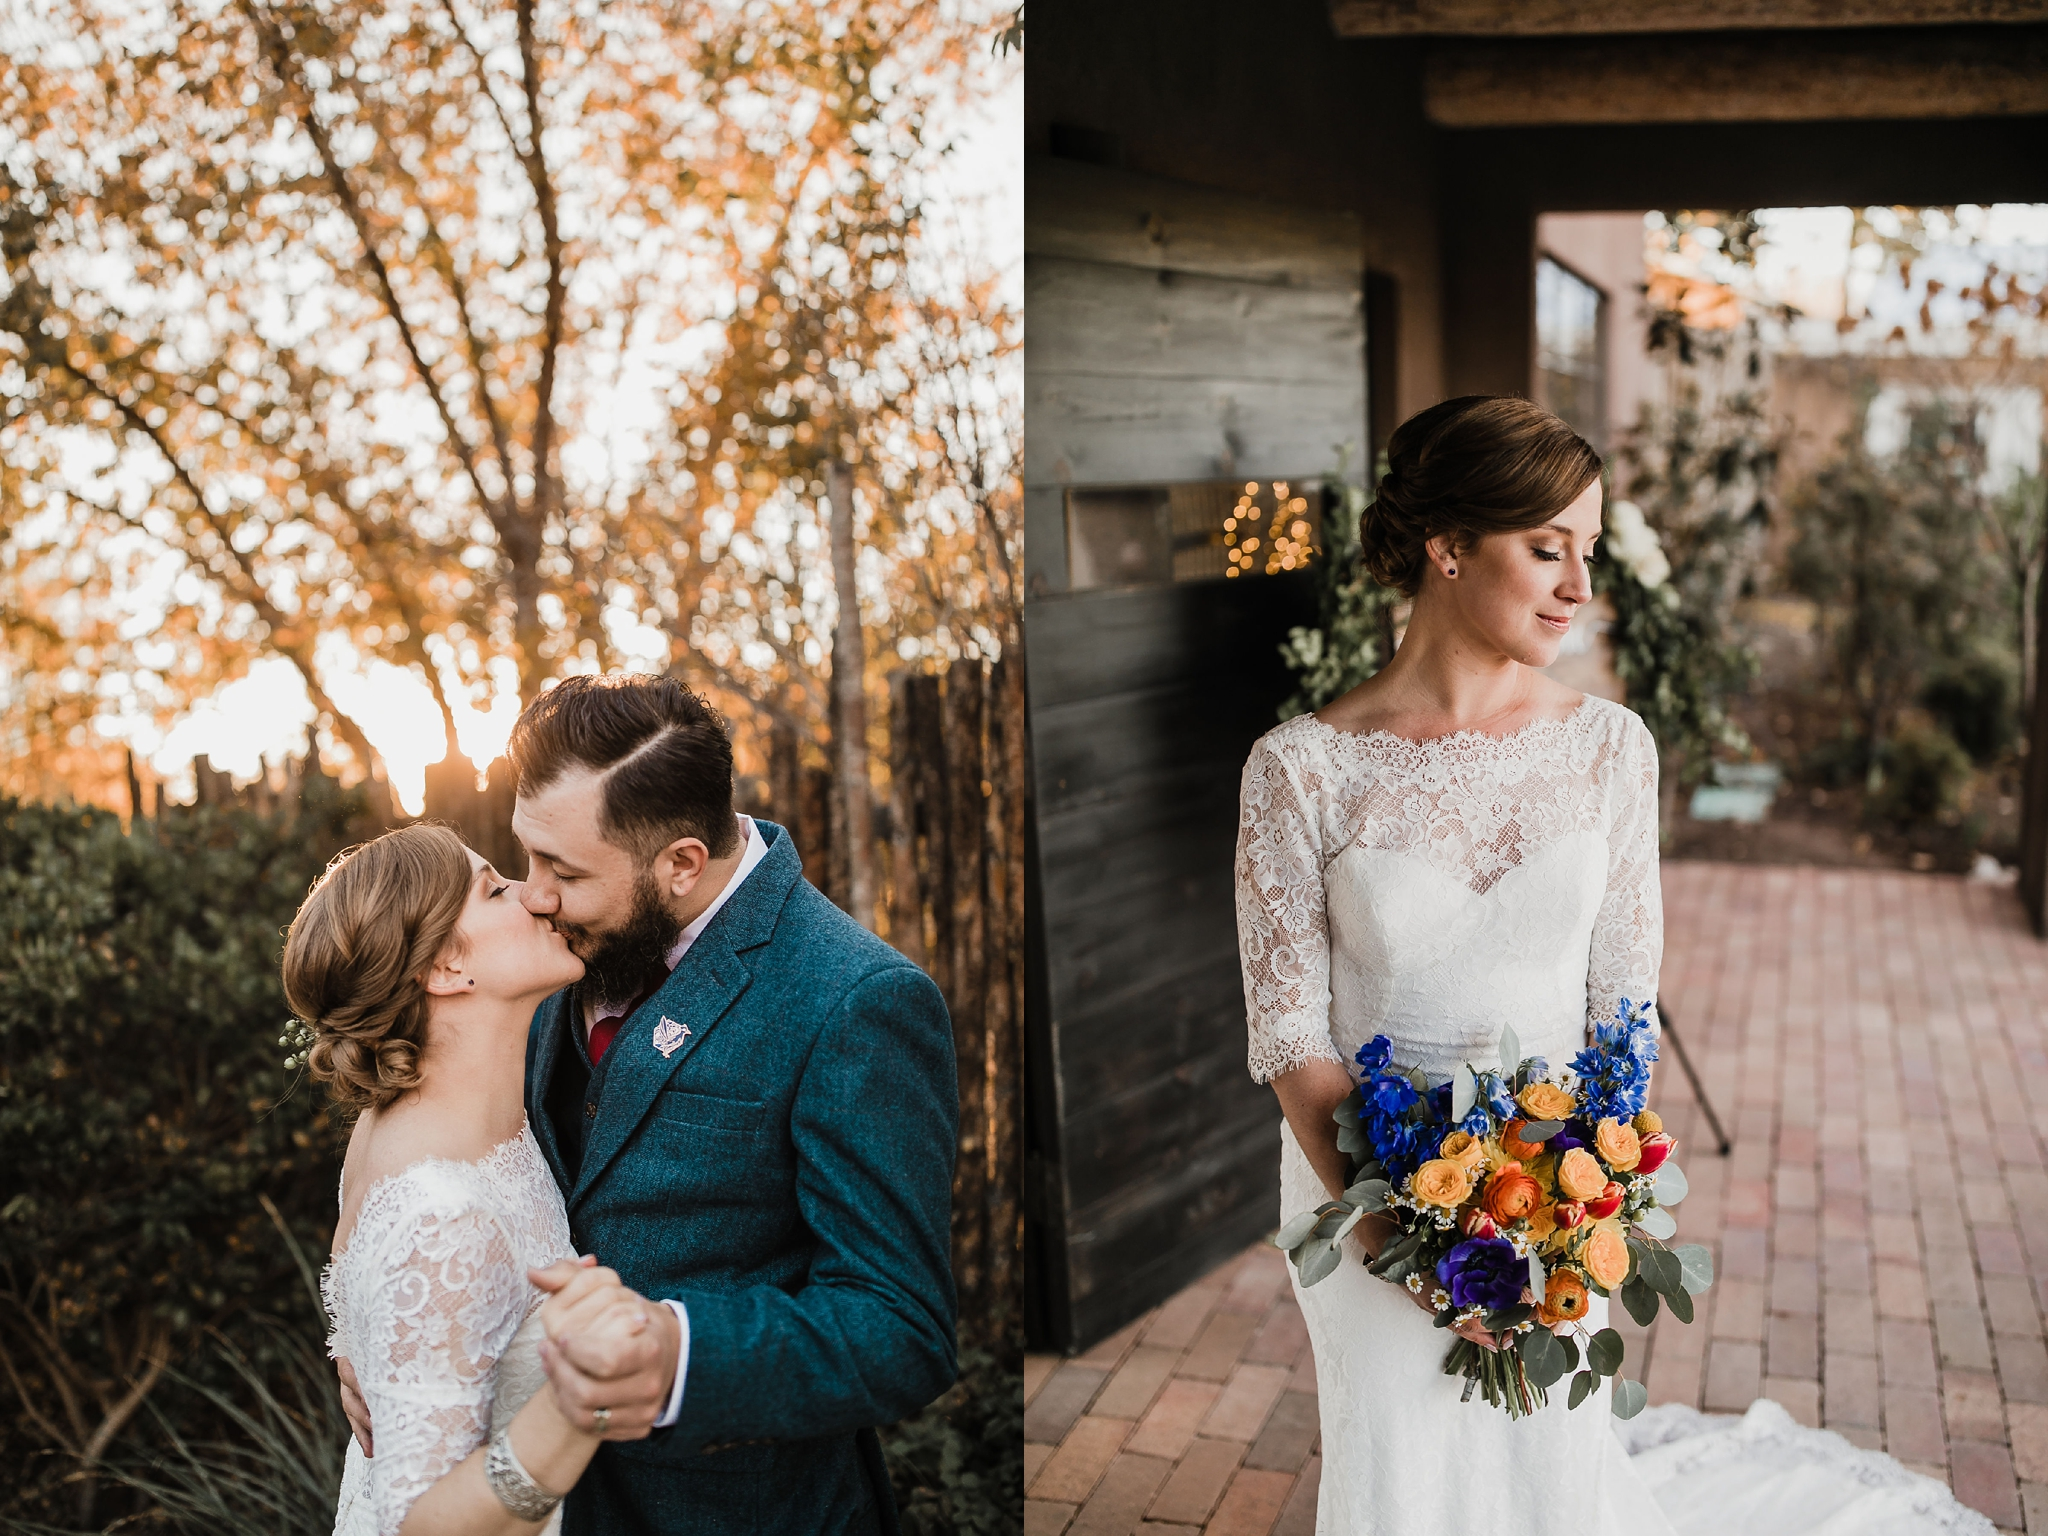 Alicia+lucia+photography+-+albuquerque+wedding+photographer+-+santa+fe+wedding+photography+-+new+mexico+wedding+photographer+-+new+mexico+wedding+-+santa+fe+wedding+-+albuquerque+wedding+-+bridal+hair_0005.jpg